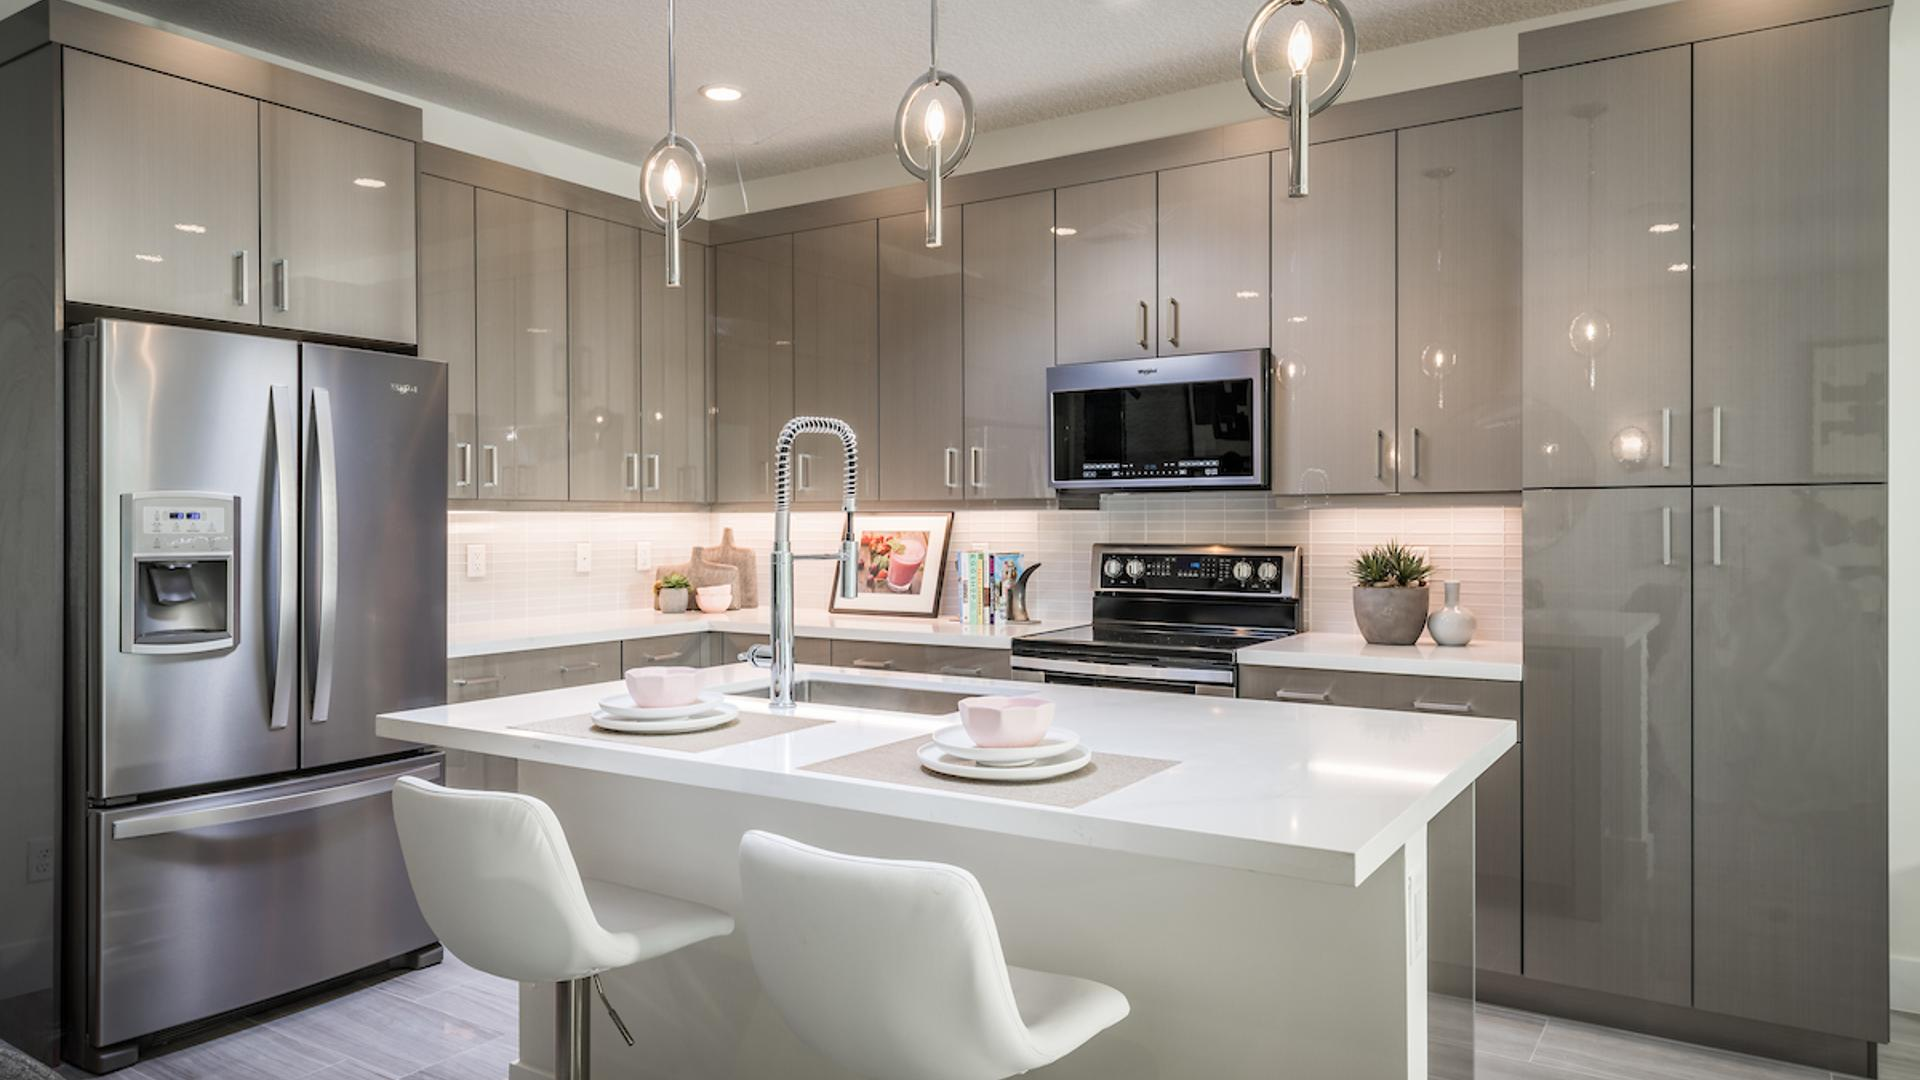 Spacious kitchens with oversize center island